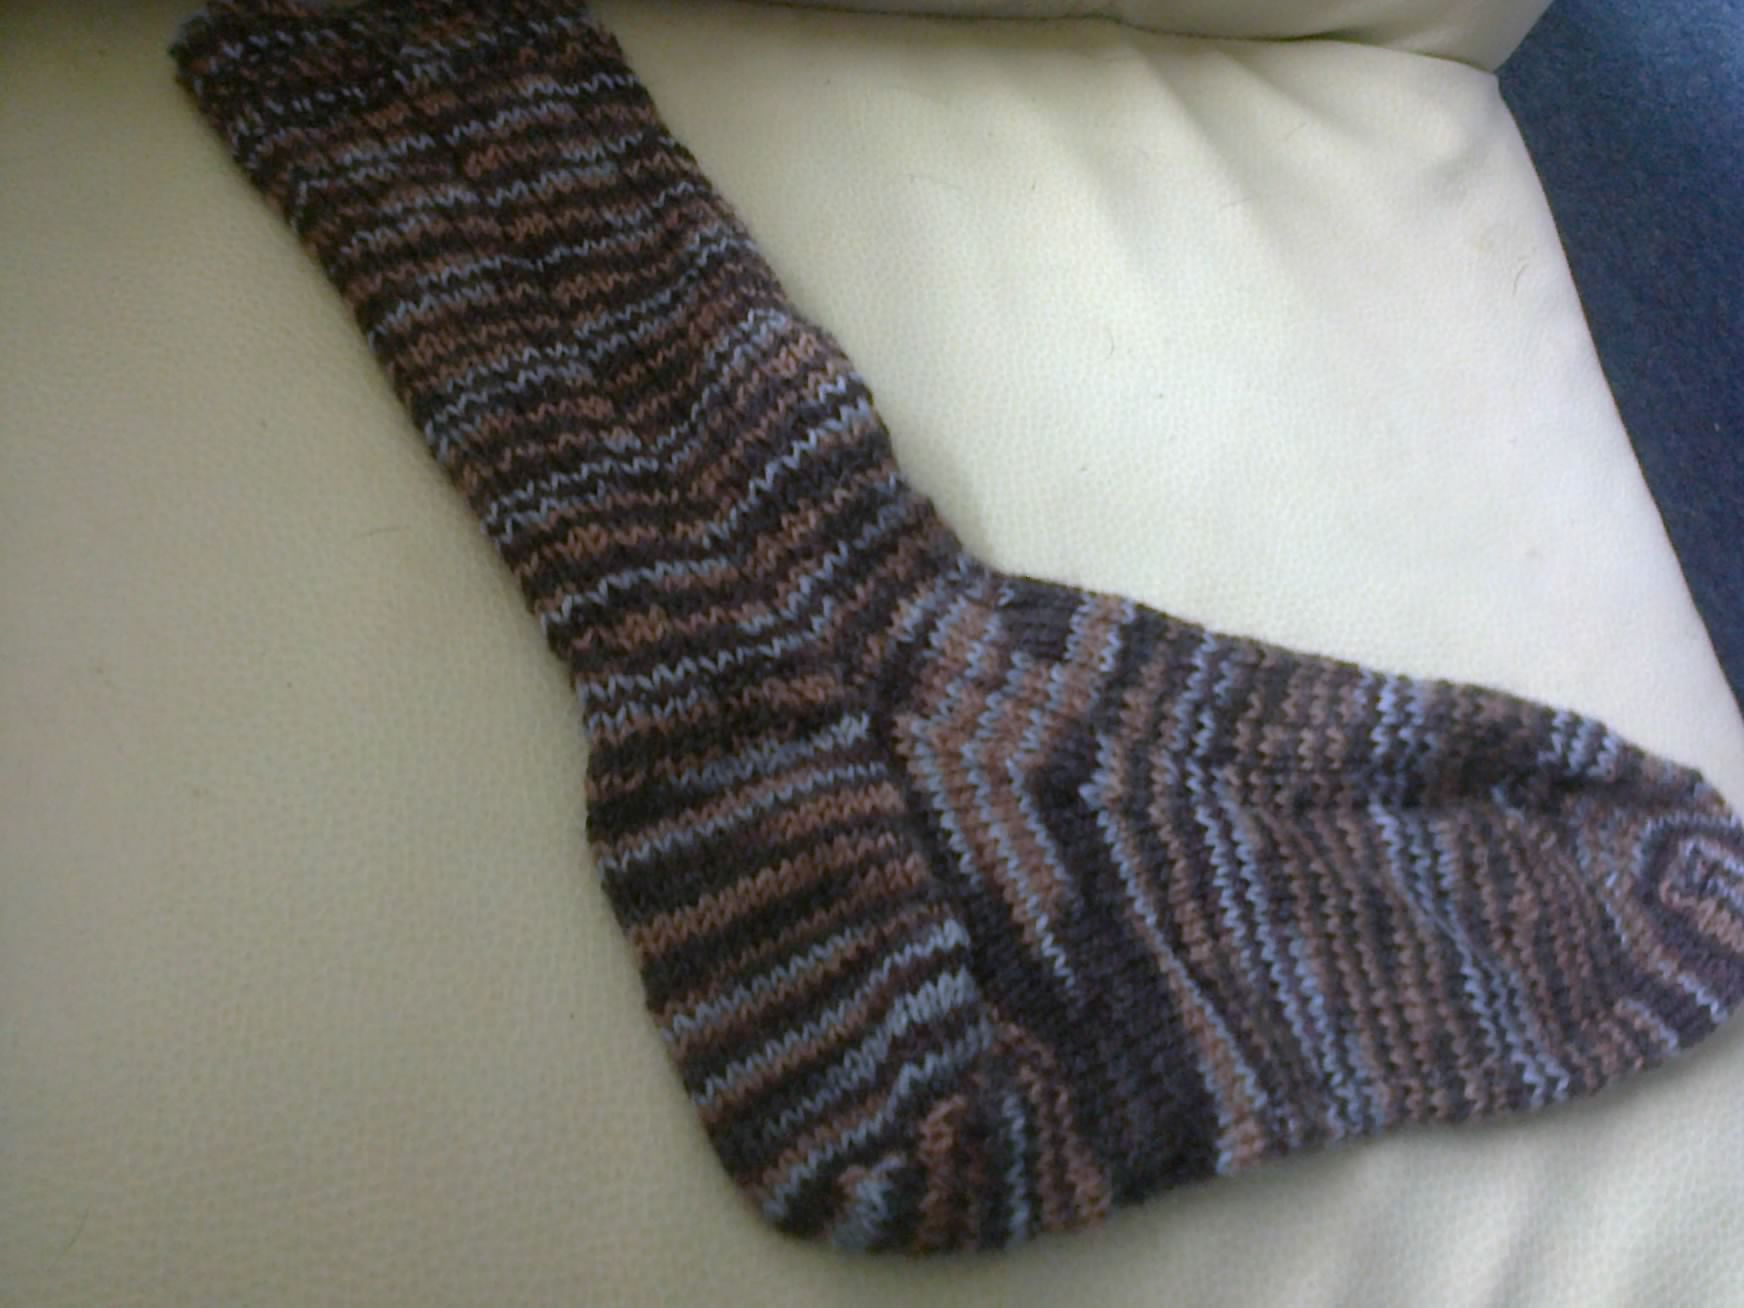 one finished sock, the other is on my needles